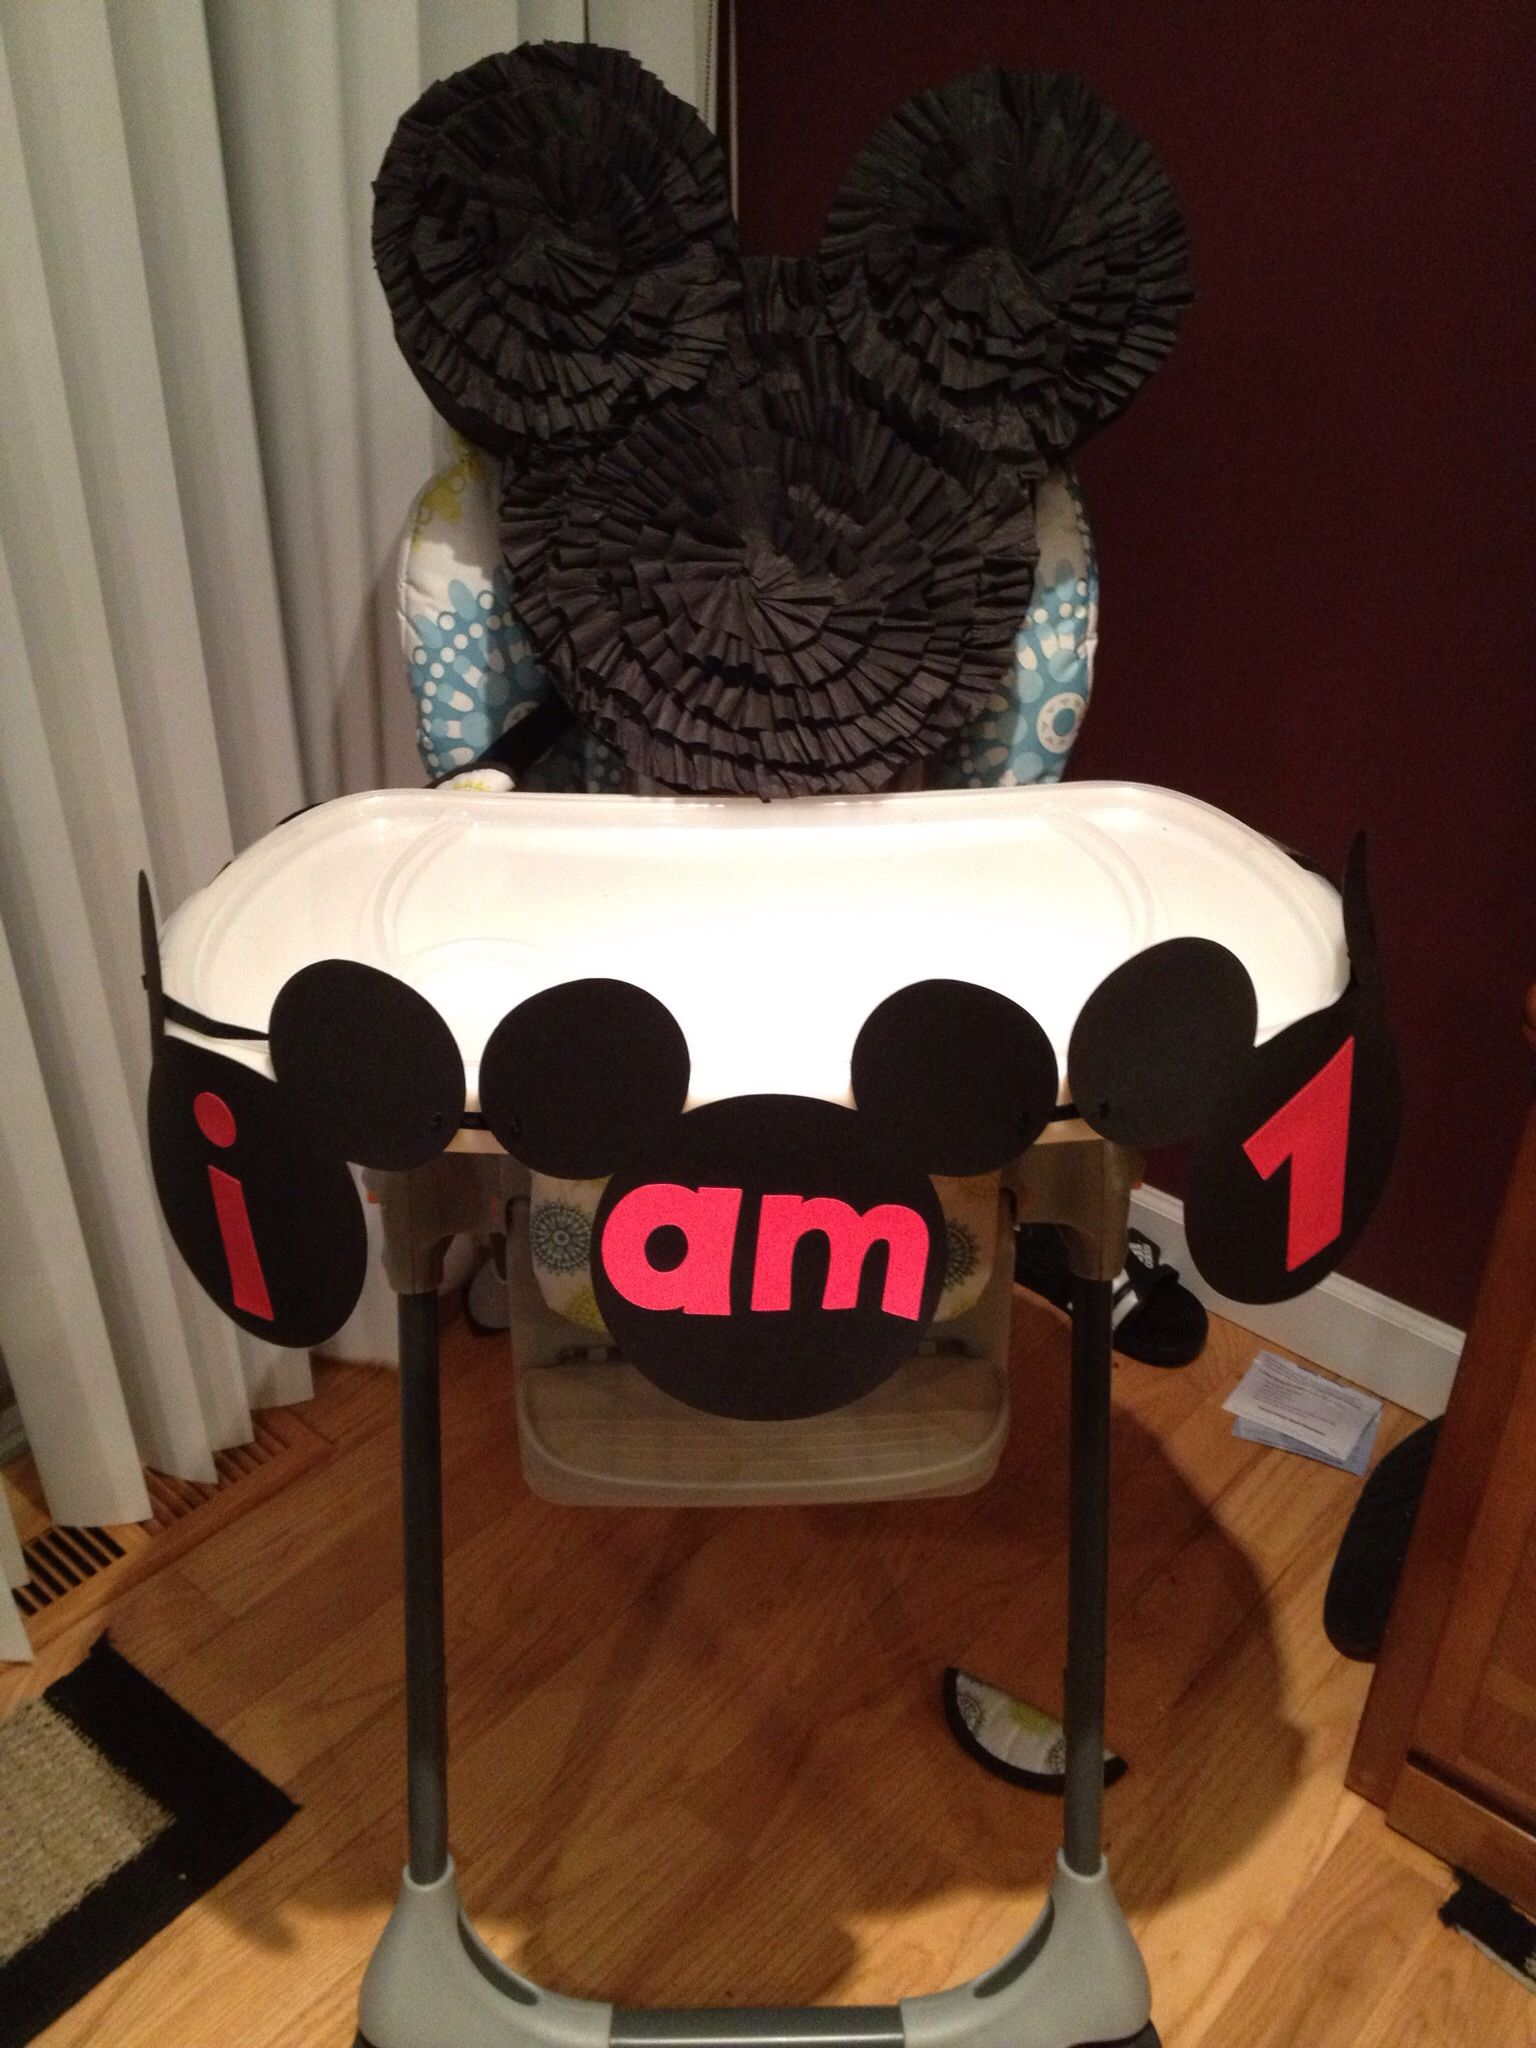 mickey mouse high chair decorations how to clean plastic chairs and tables banner for the twin 39s 1st birthday